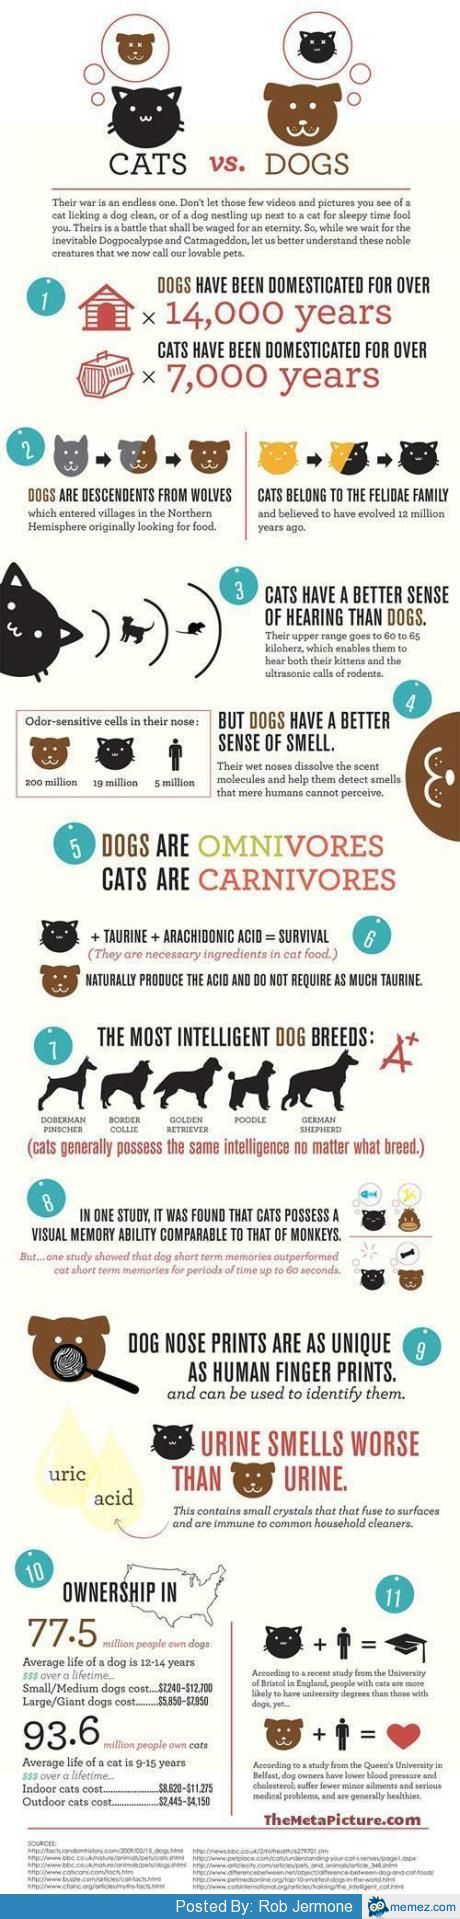 Dogs vs Cats, interesting to compare because I have both